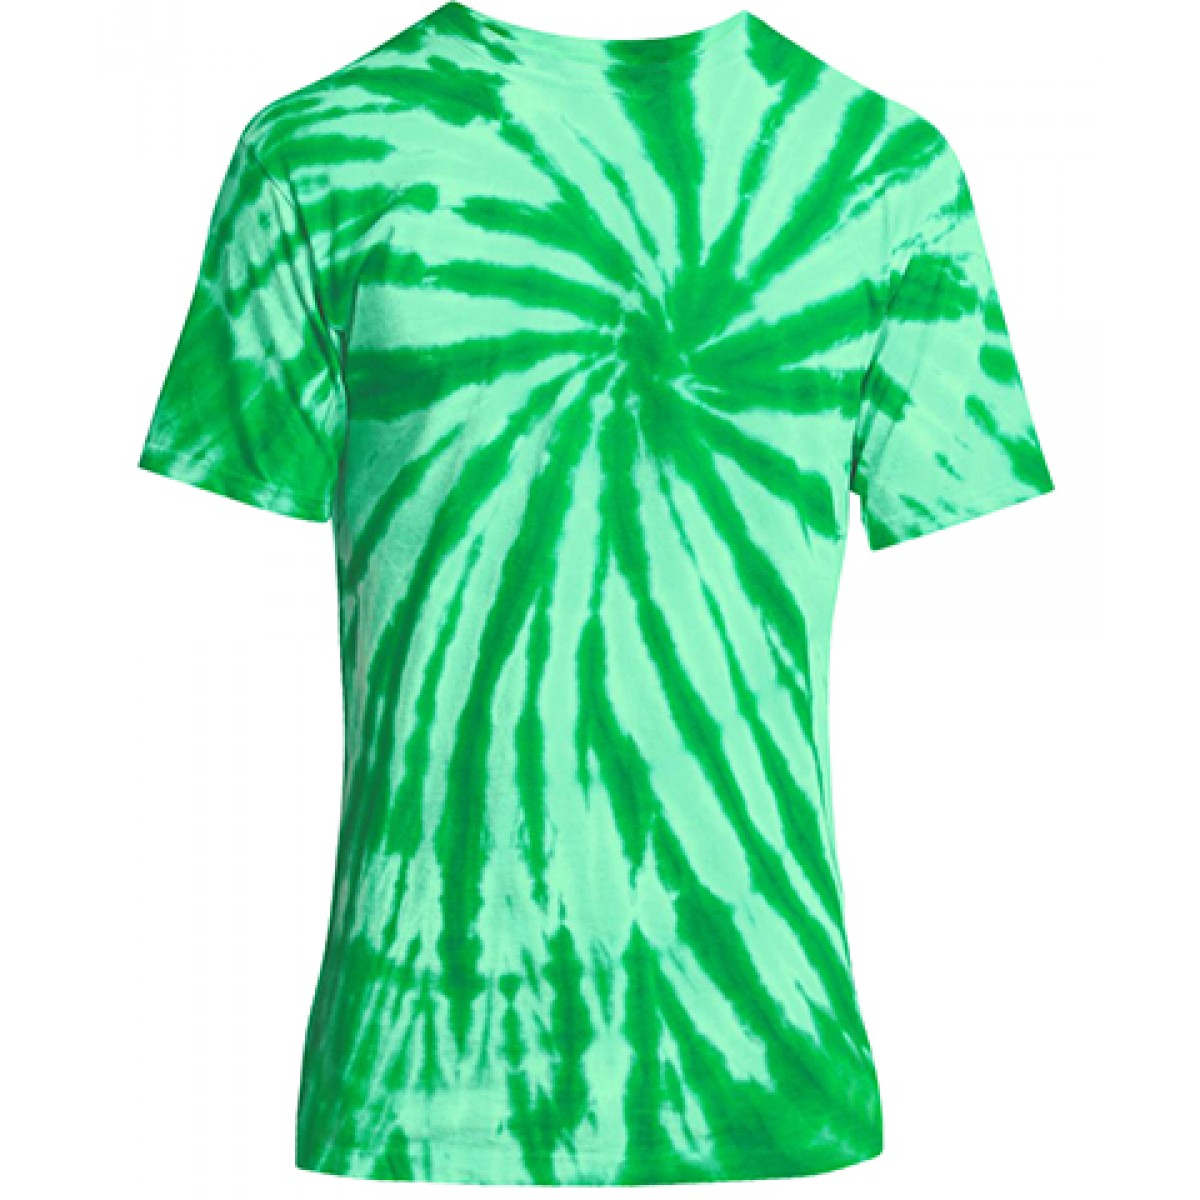 Essential Tie-Dye Tee (Colors: Green, Fuscia, Tropic Blue)